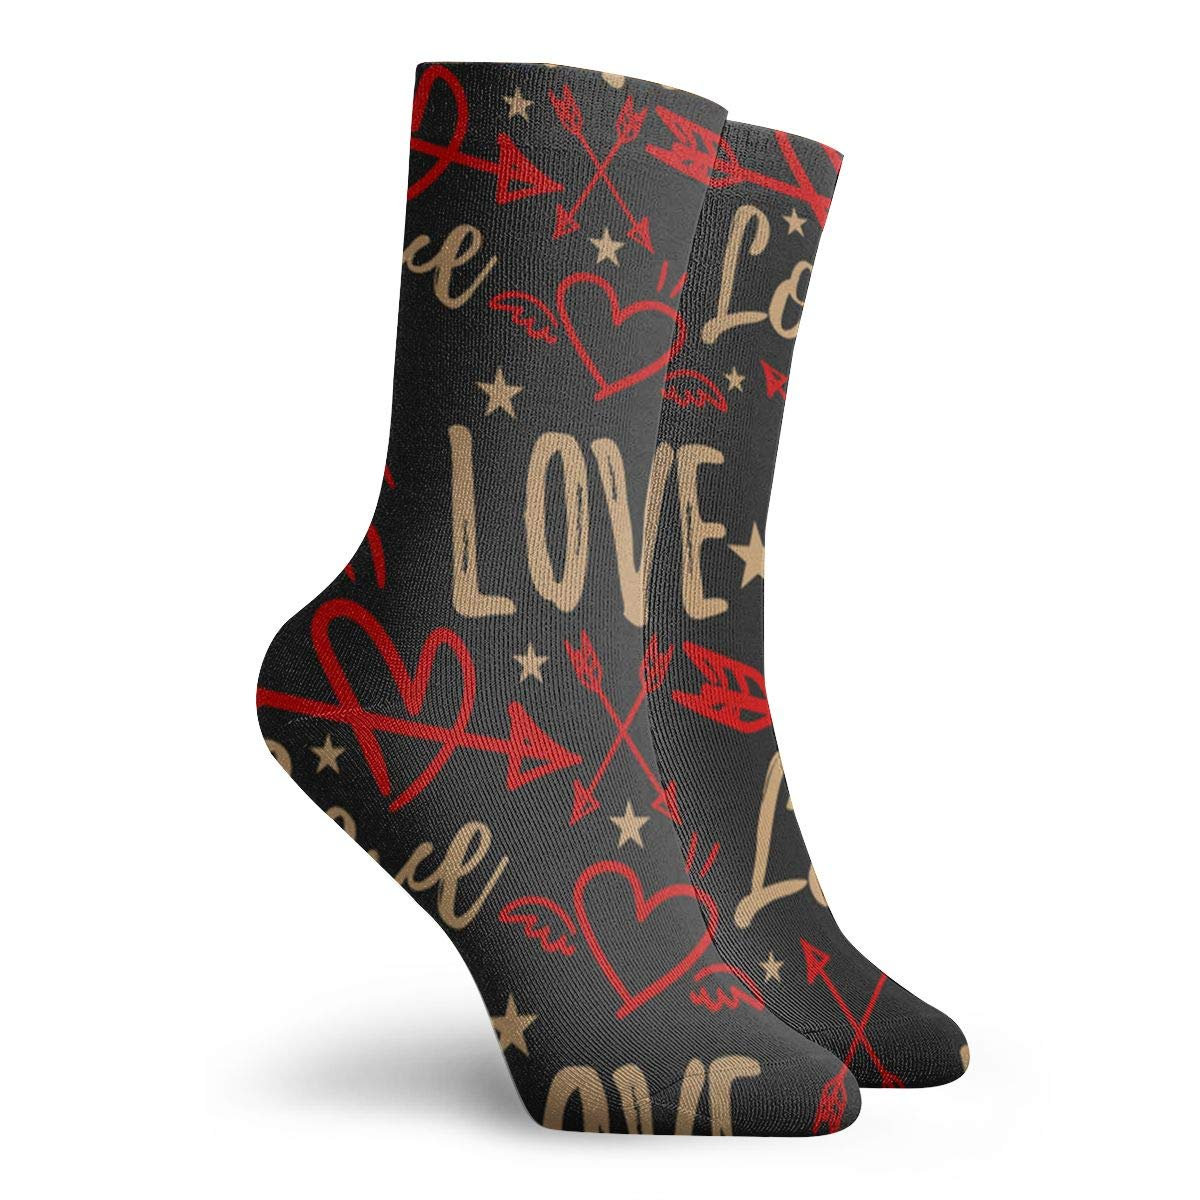 Valentine Unisex Funny Casual Crew Socks Athletic Socks For Boys Girls Kids Teenagers